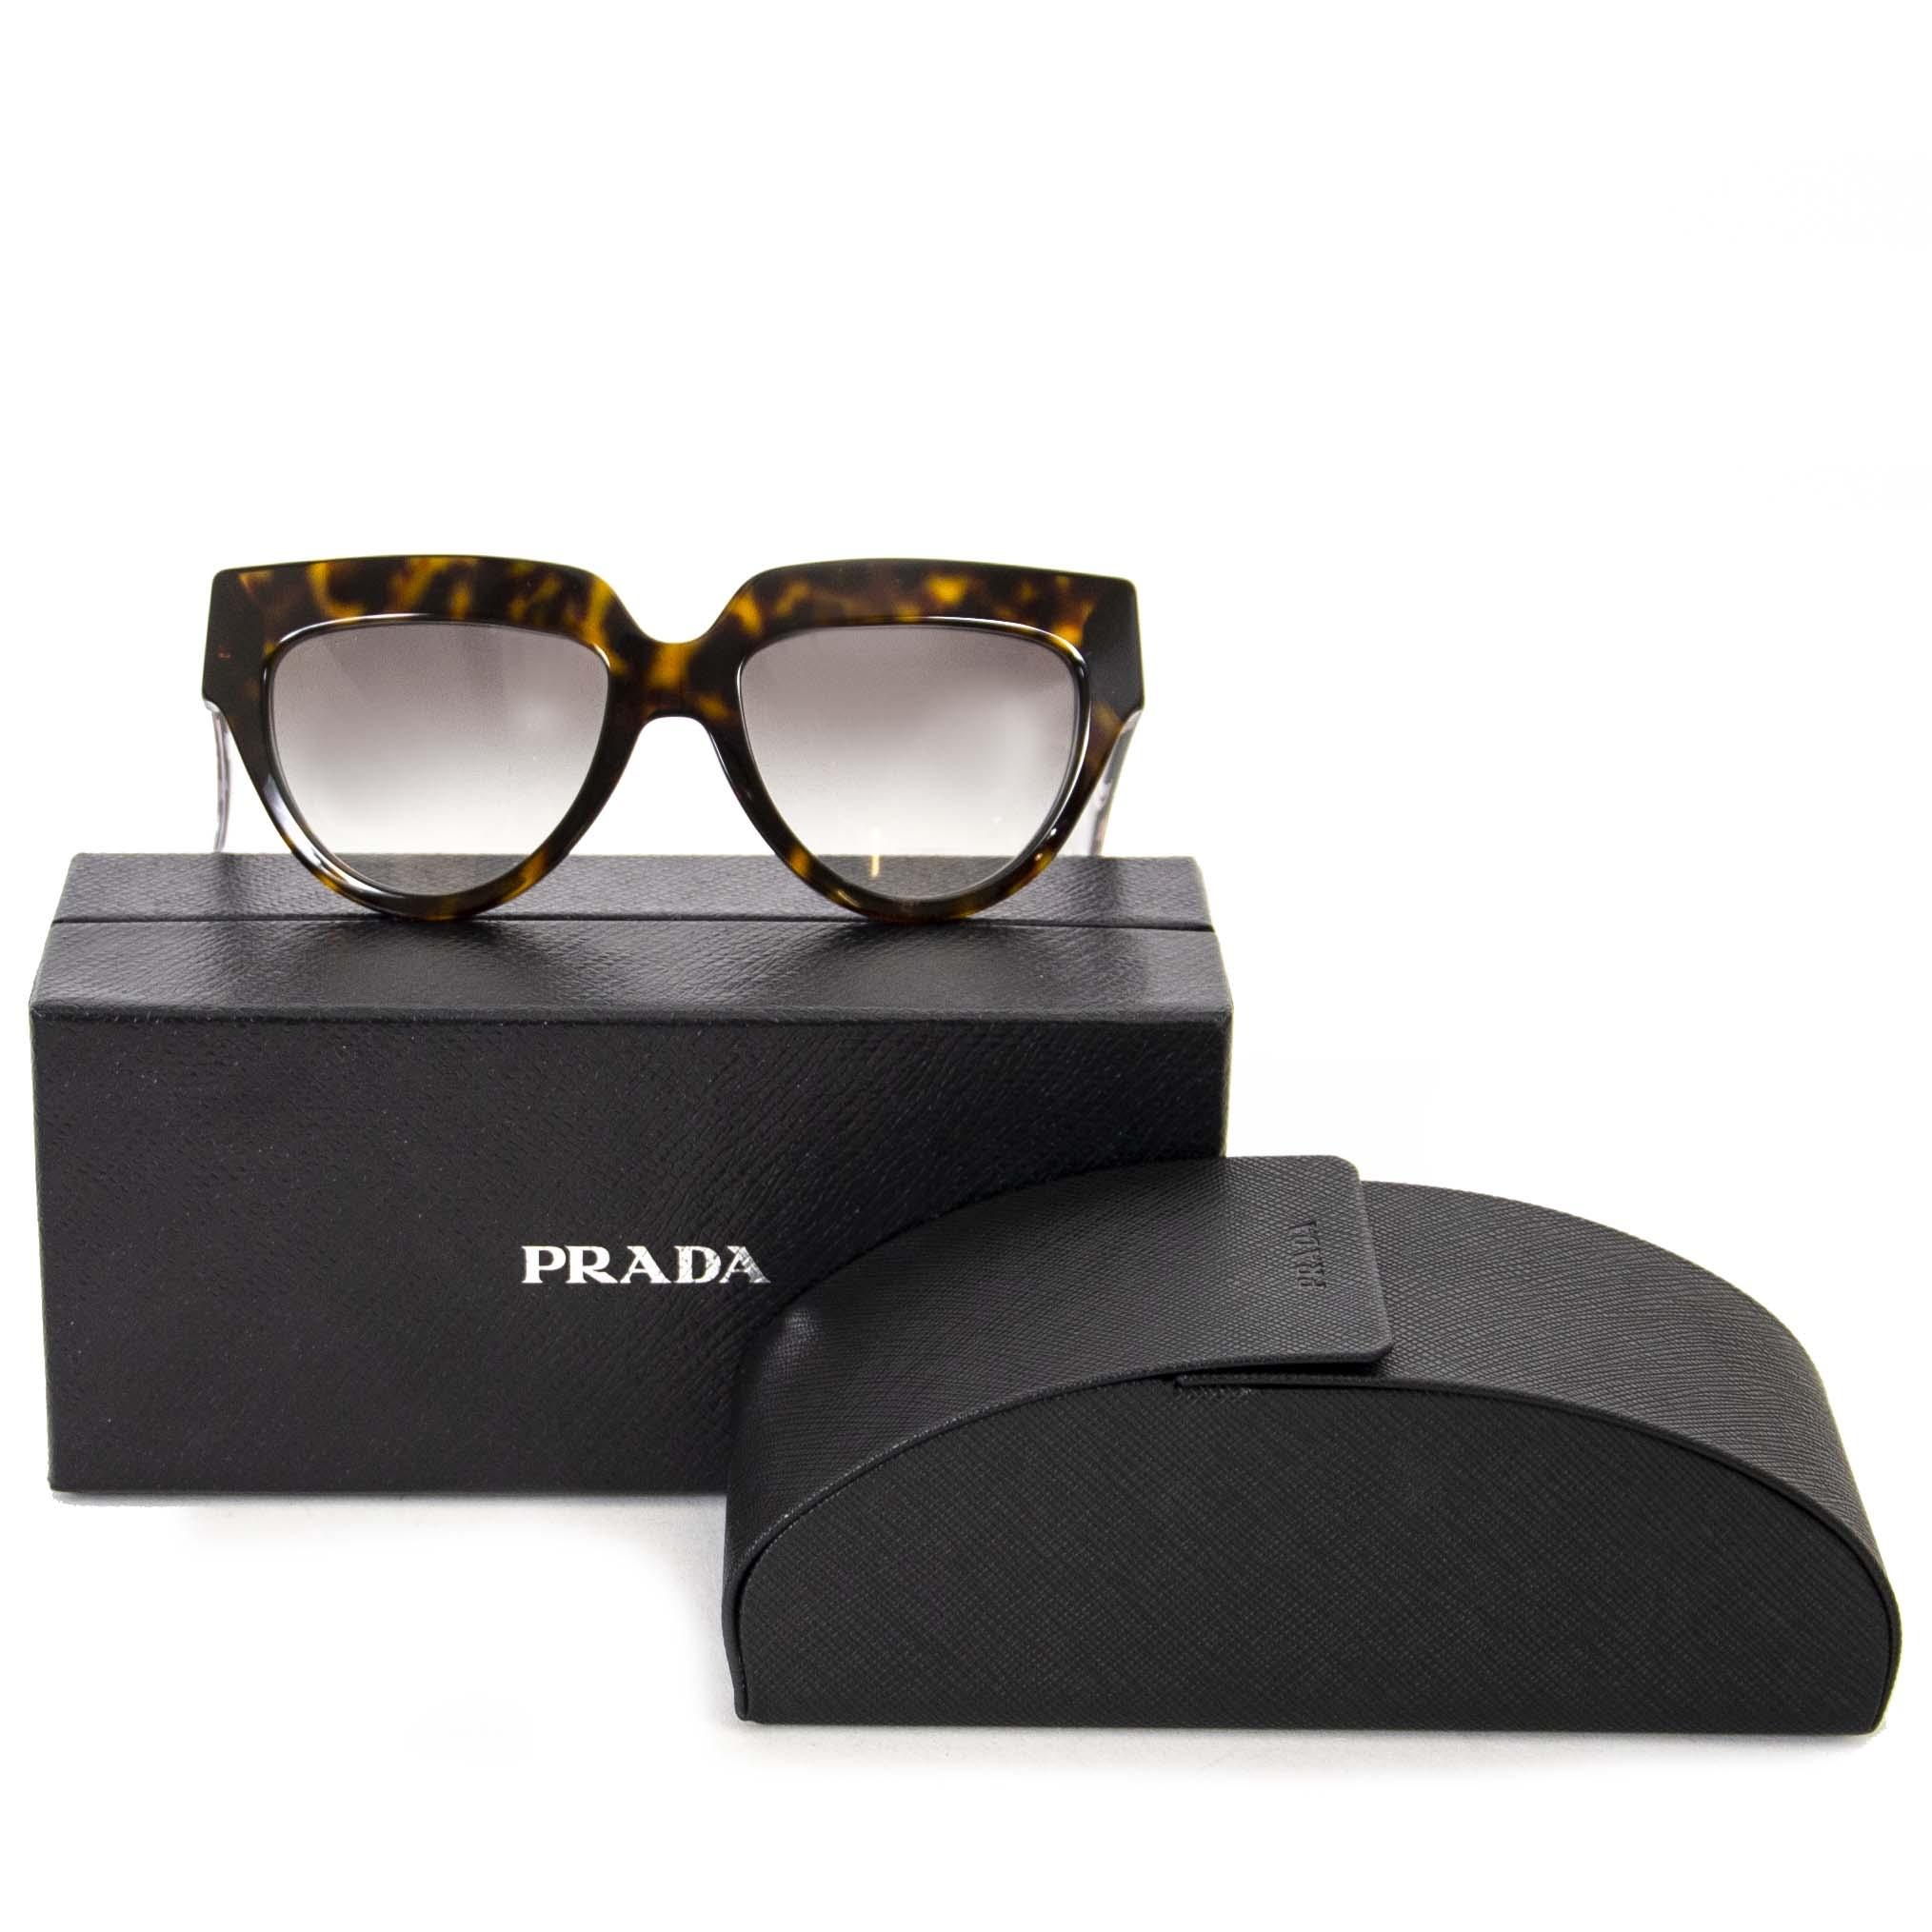 3c74c61ae9 ... Prada Poeme Black And Tortoise Flower Sunglasses now for sale at labellov  vintage fashion webshop belgium